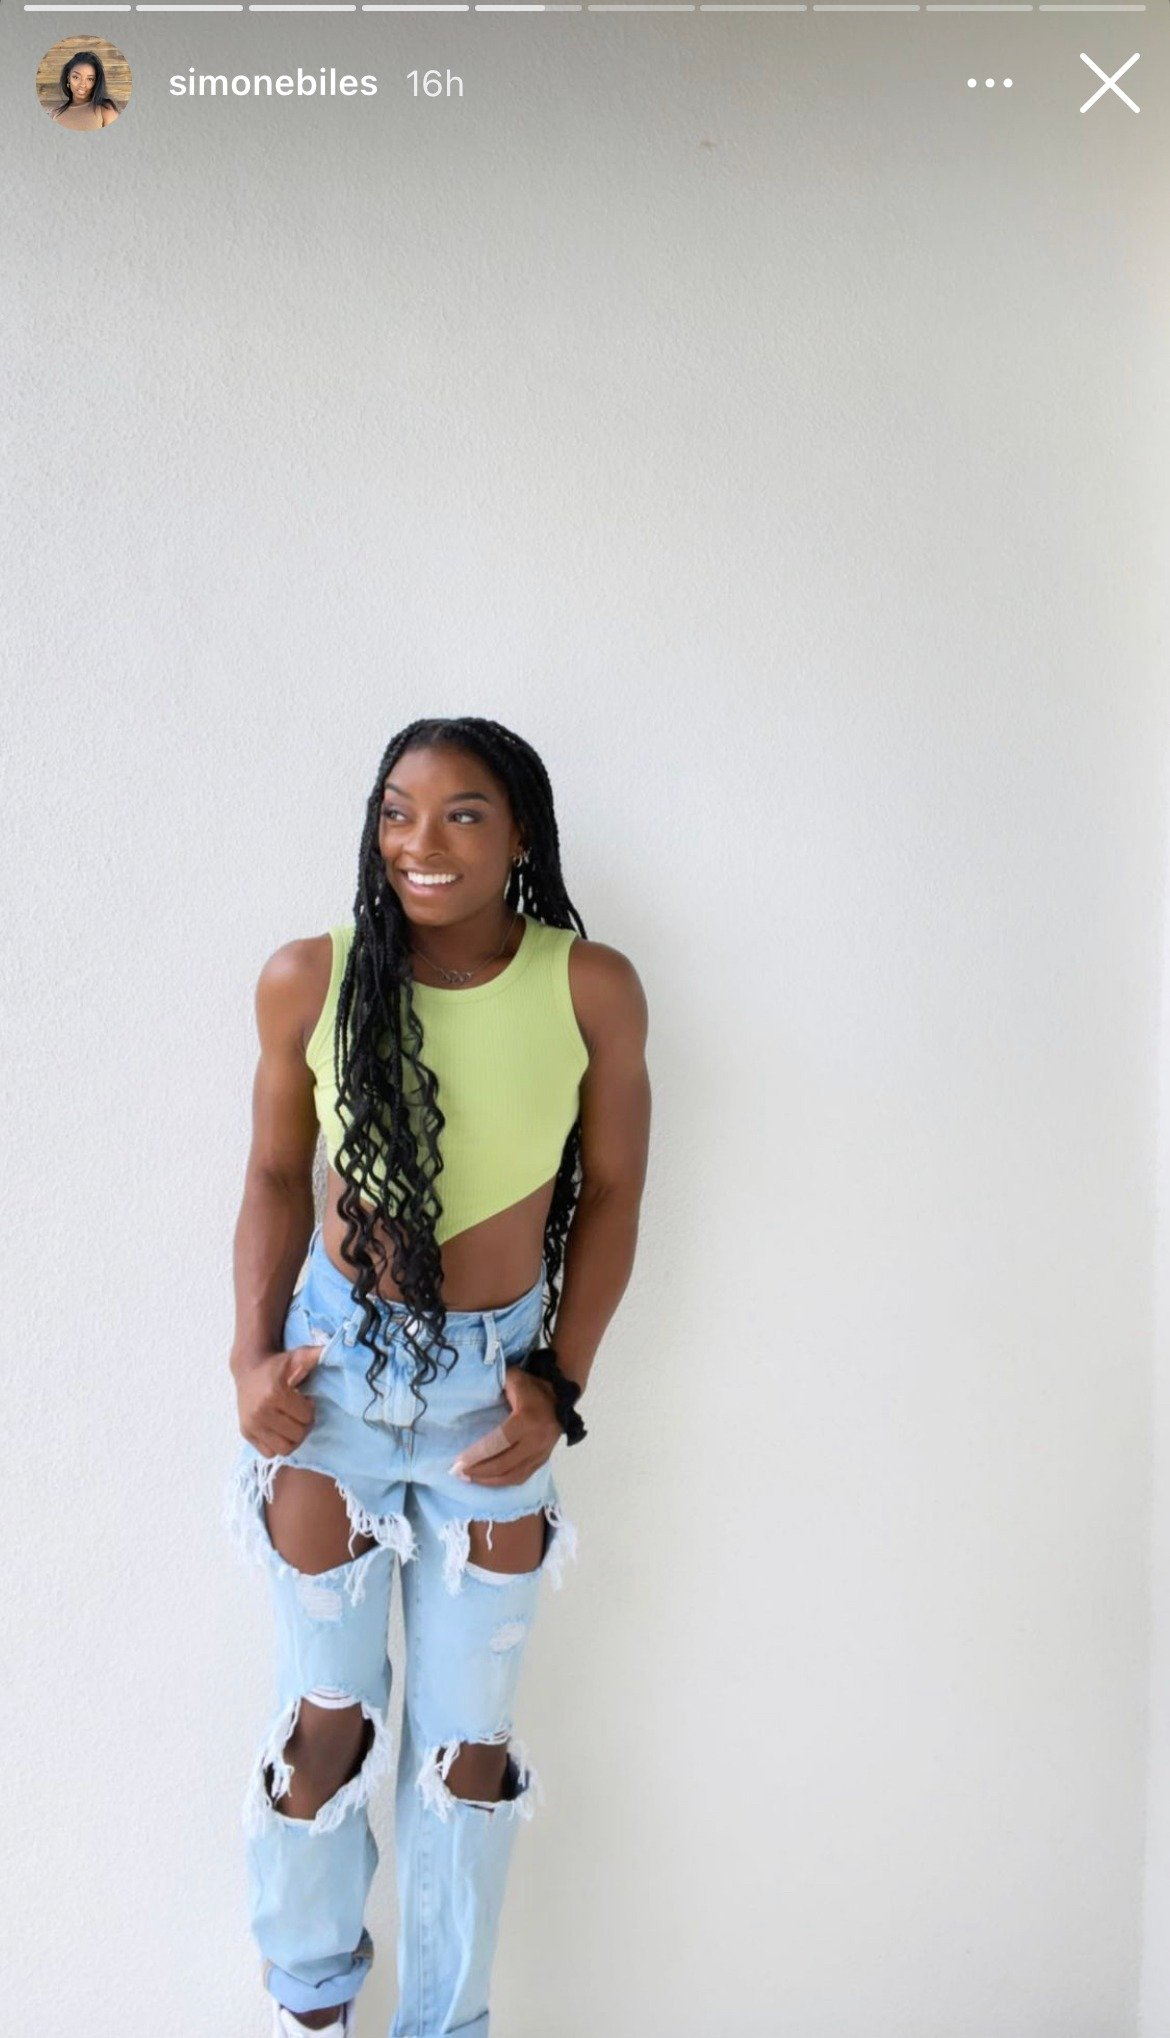 Simone Biles shows off her chiseled body in green top and ripped blue jeans.   Photo: Instagram/Simonebiles